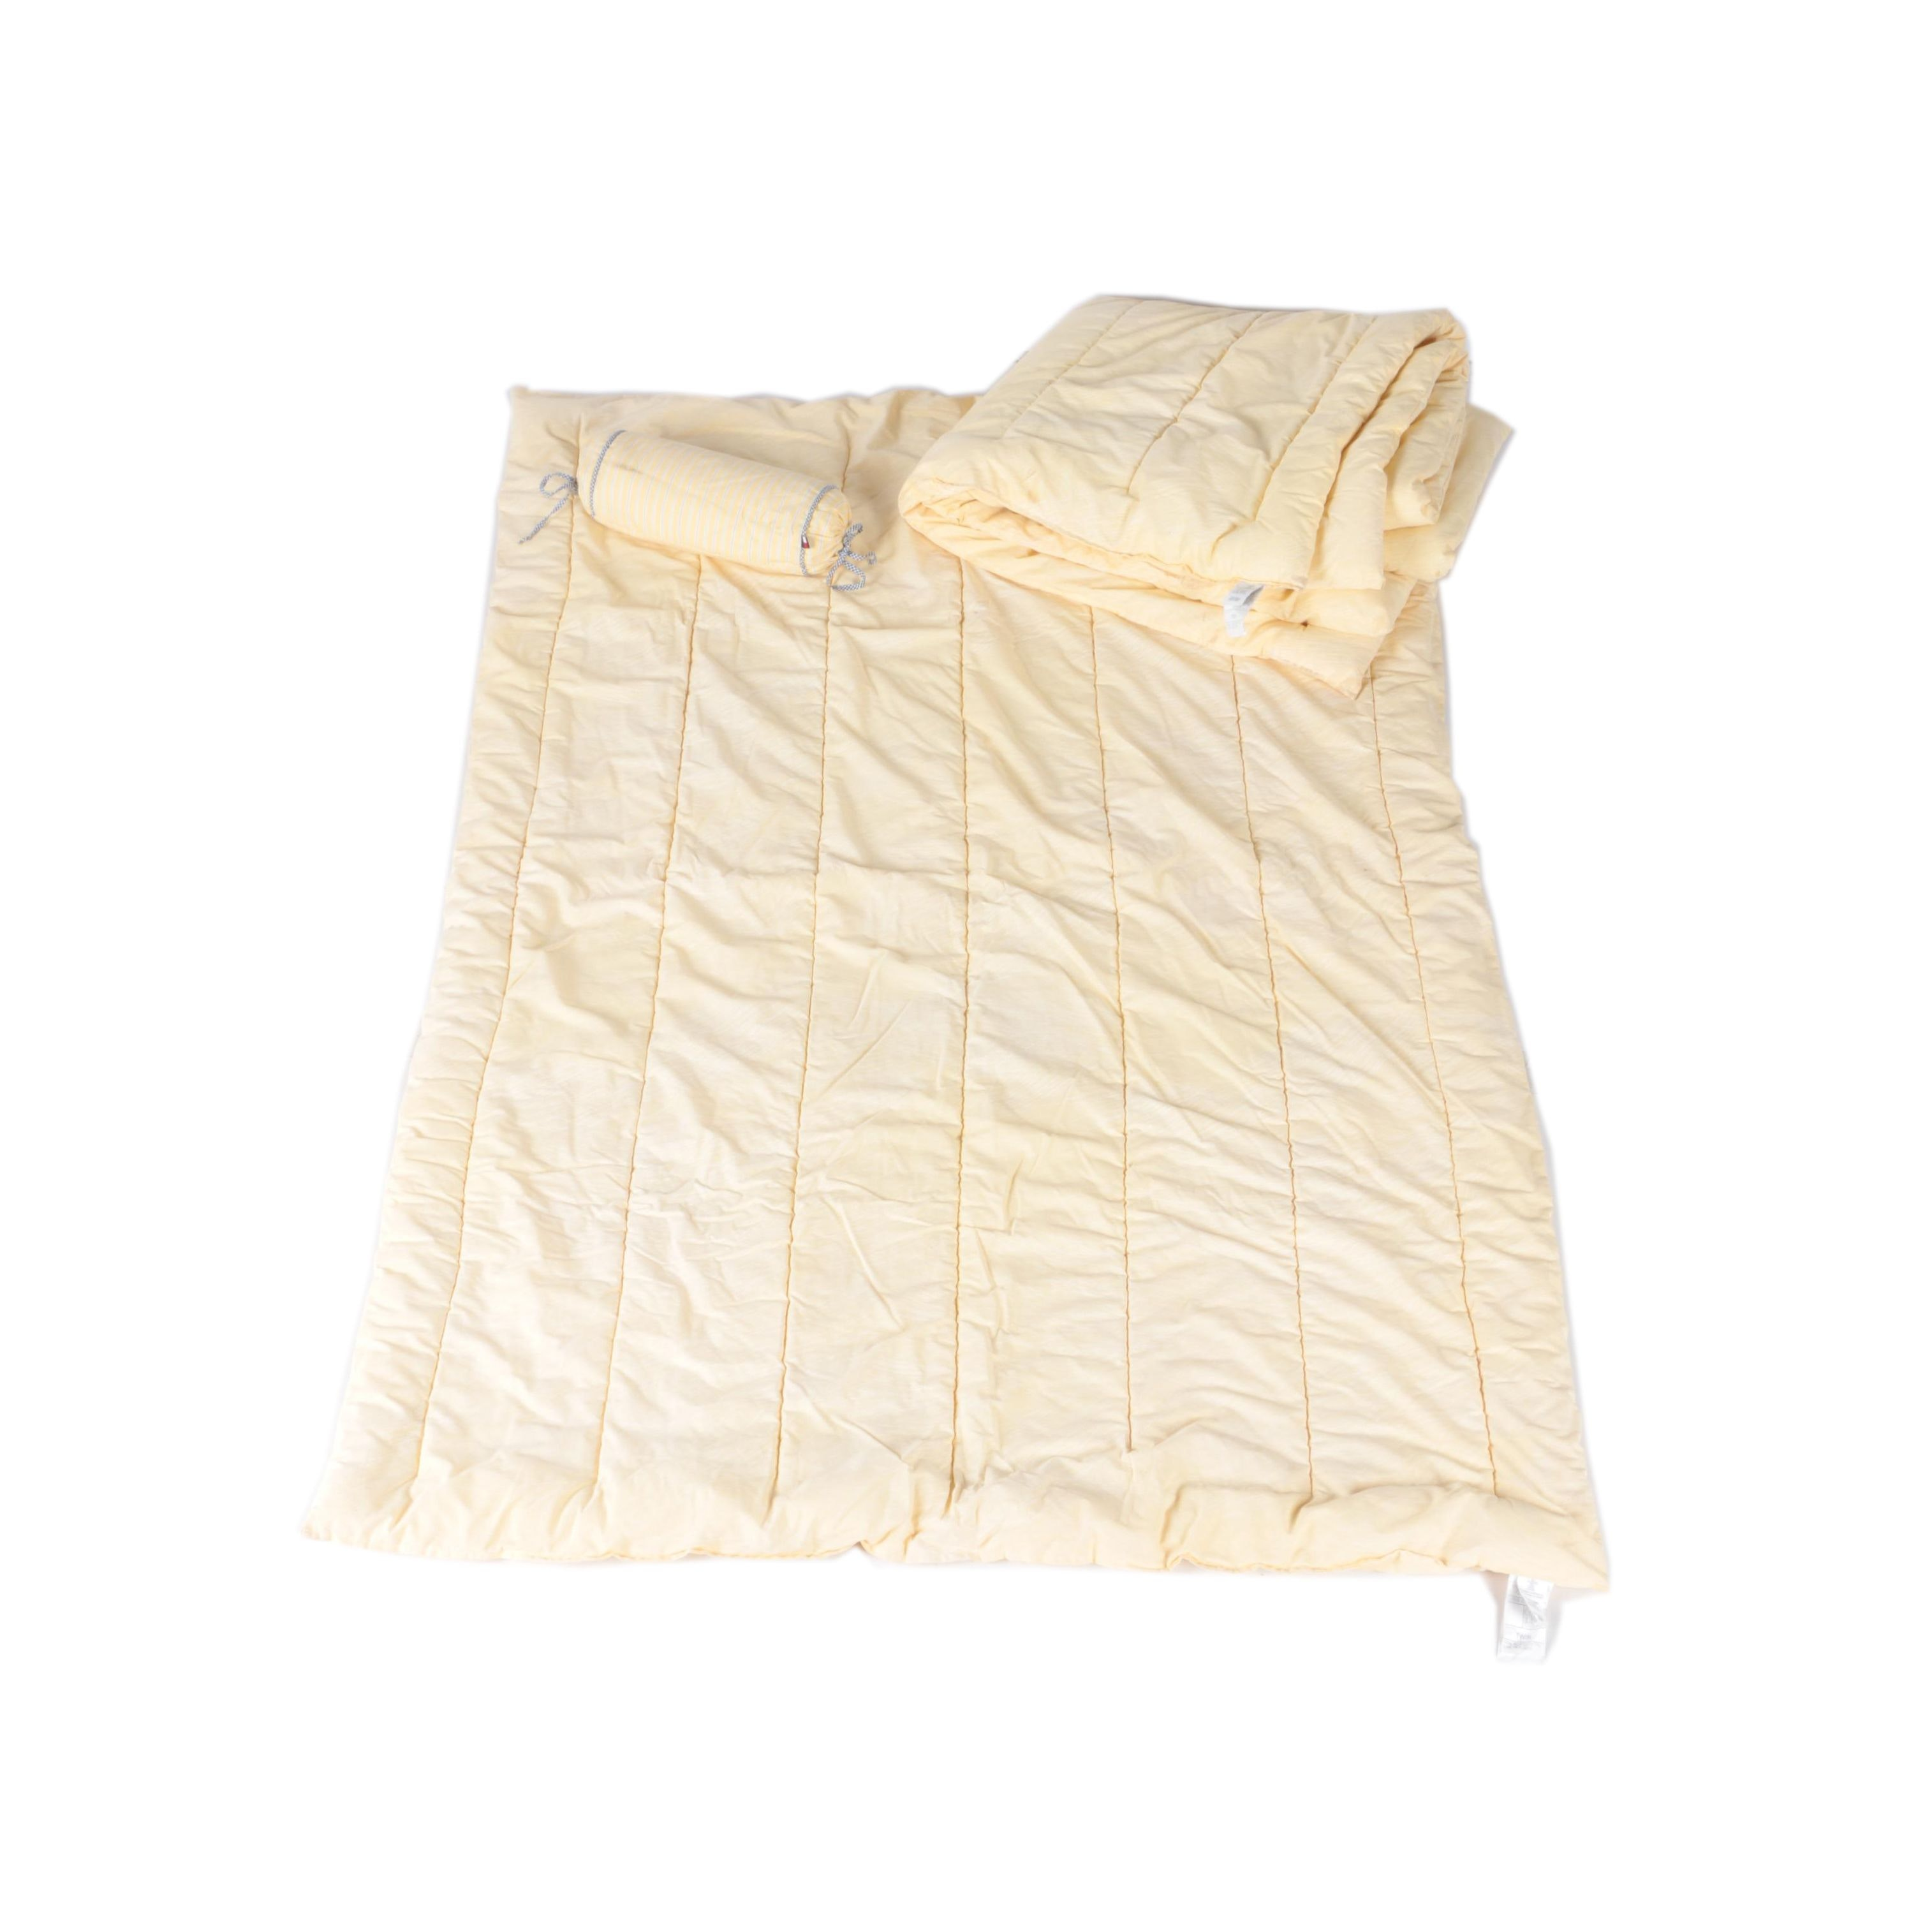 Yellow Twin Sized Comforters with Tommy Hilfiger Bolster Pillow